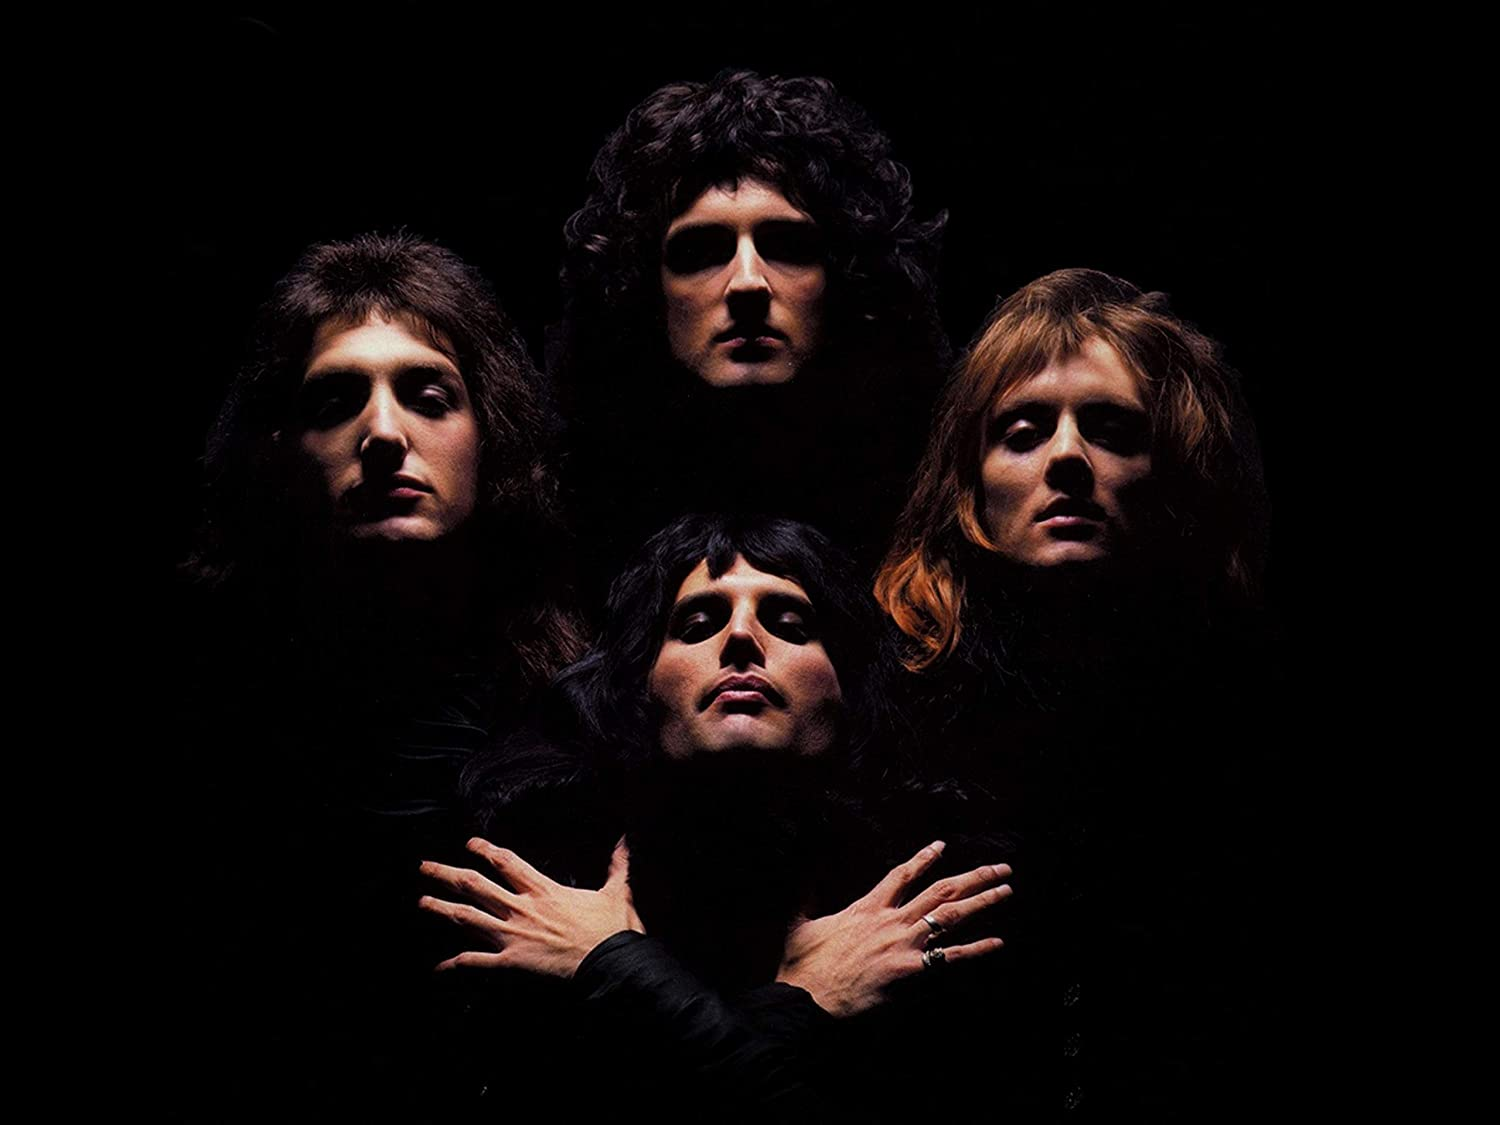 QUEEN BAND POSTER 24x36 MUSIC 1575